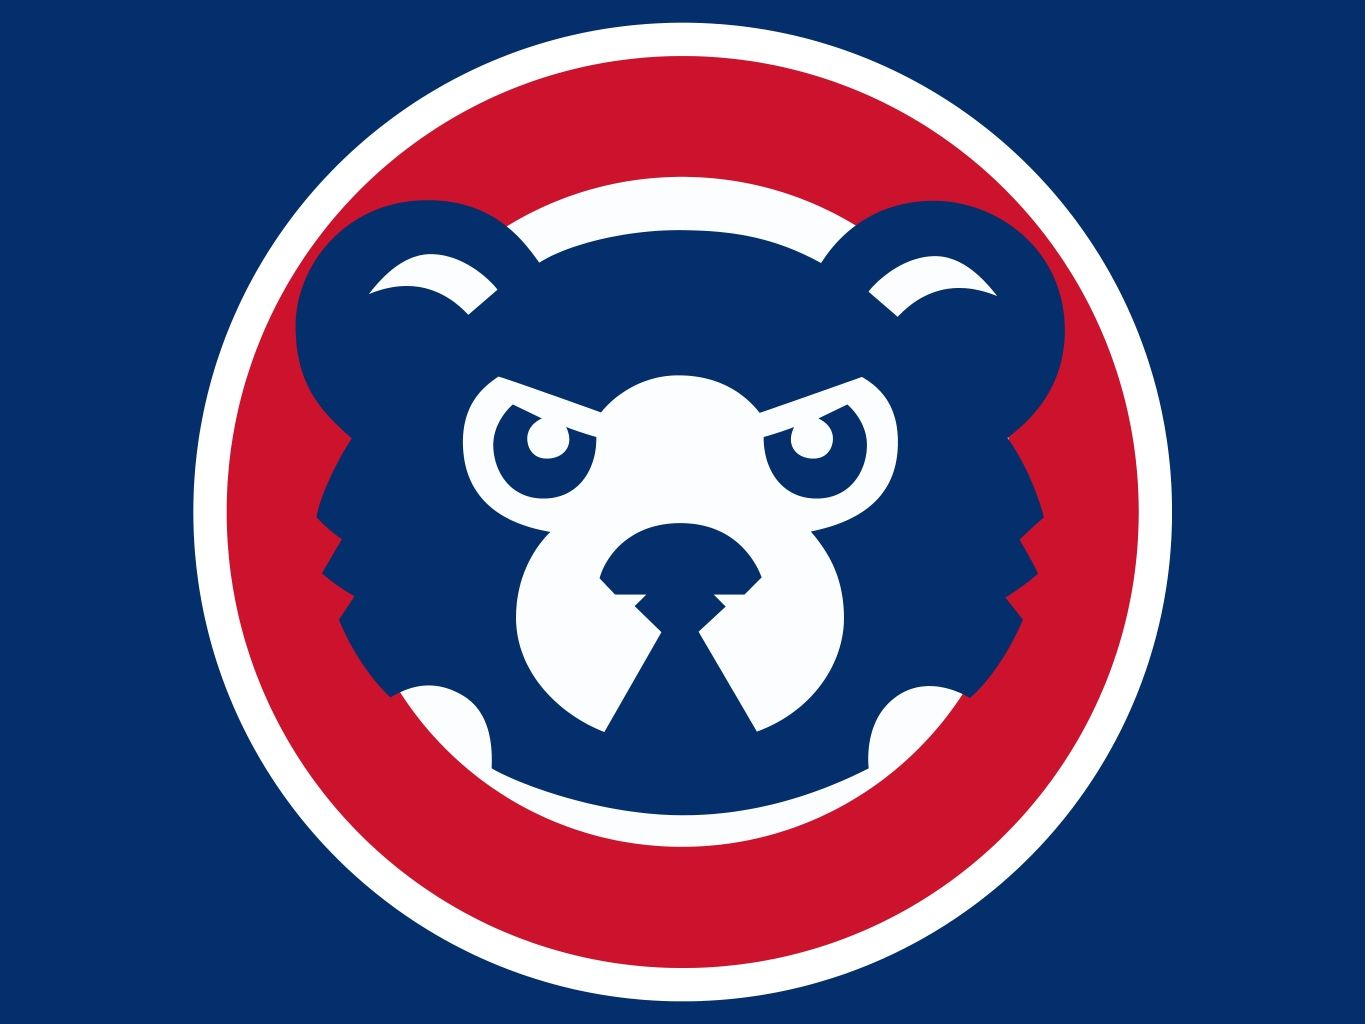 Chicago Cubs Logo - Cubbies | ++~* Chicago Cubs*~++ | MLB, Logos, Sports logo